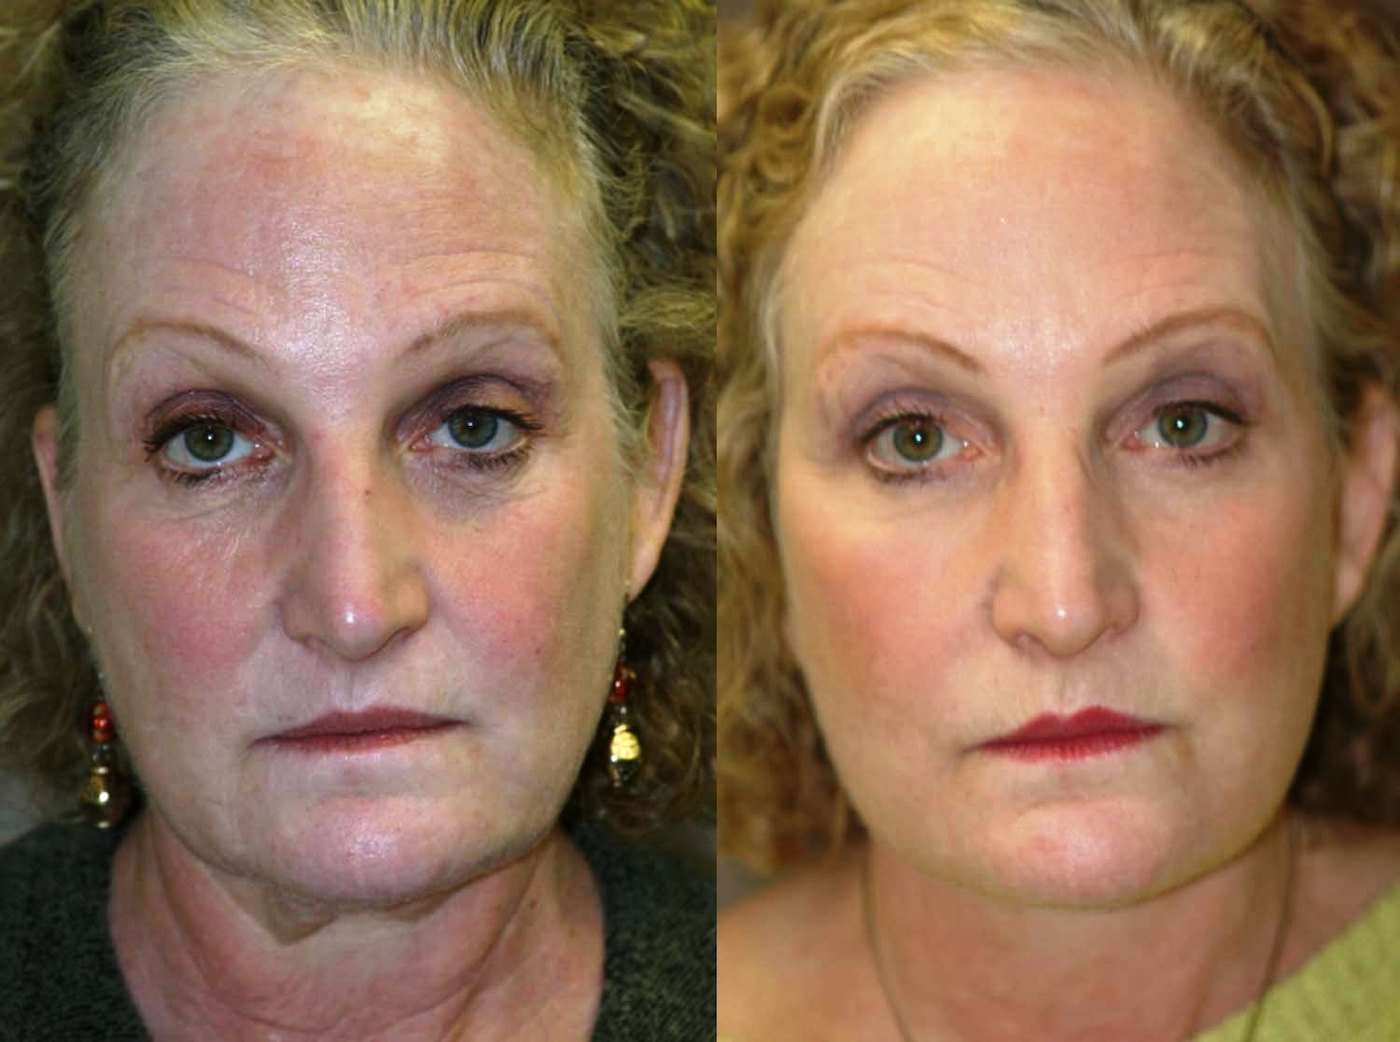 59 year-old, face-lift with submental plication of platysma muscles, laser lower eyelids and lateral canthoplasty front view